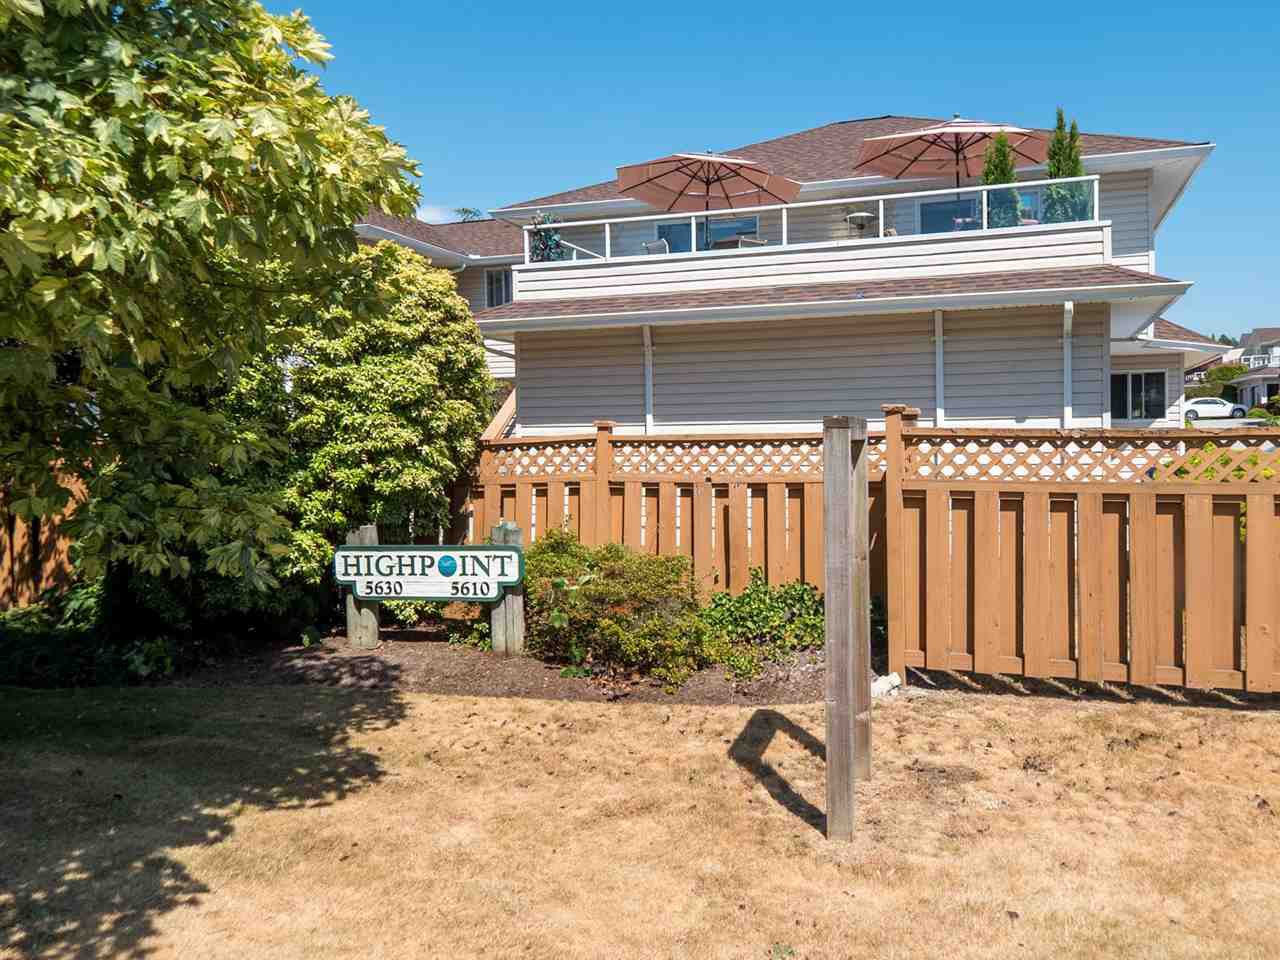 """Photo 20: Photos: 16 5630 TRAIL Avenue in Sechelt: Sechelt District Townhouse for sale in """"HIGHPOINT"""" (Sunshine Coast)  : MLS®# R2382780"""